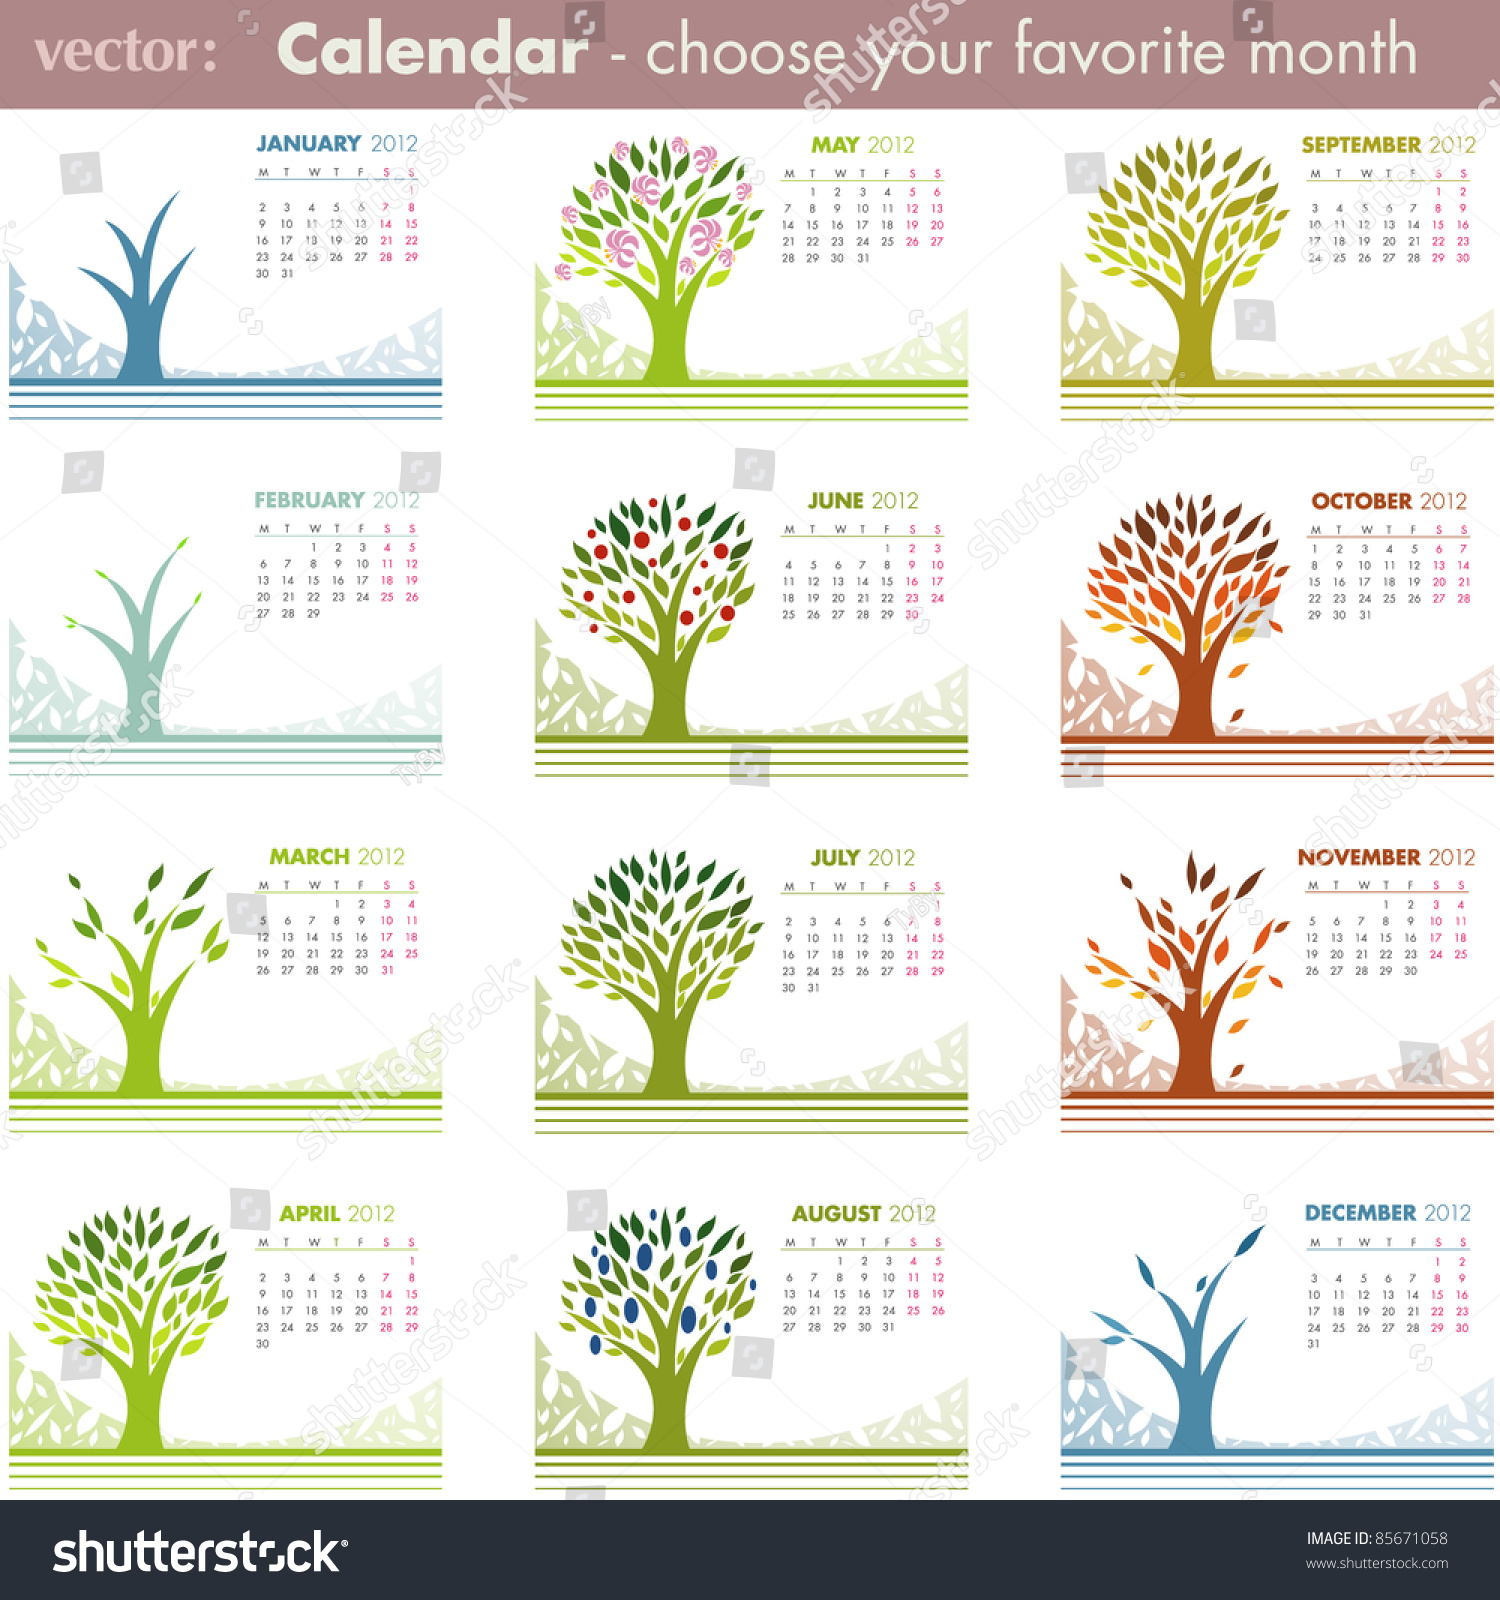 Calendar Pages Vector : Calendar pages isolated on white vector